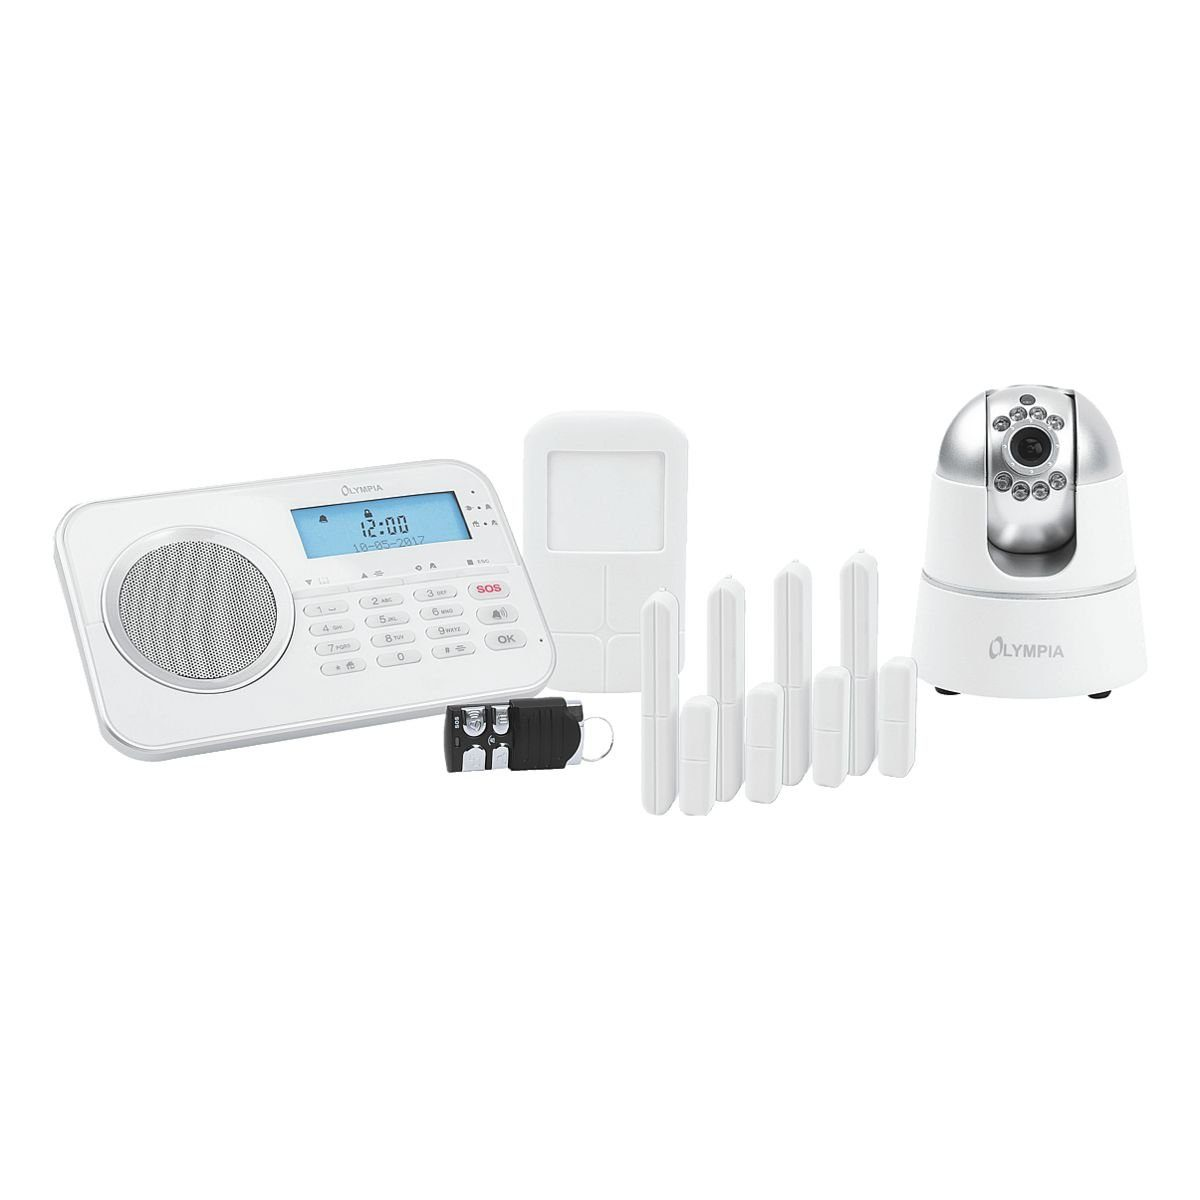 OLYMPIA OFFICE Drahtloses GSM-Alarmanlagen-Set »Protect 9881«